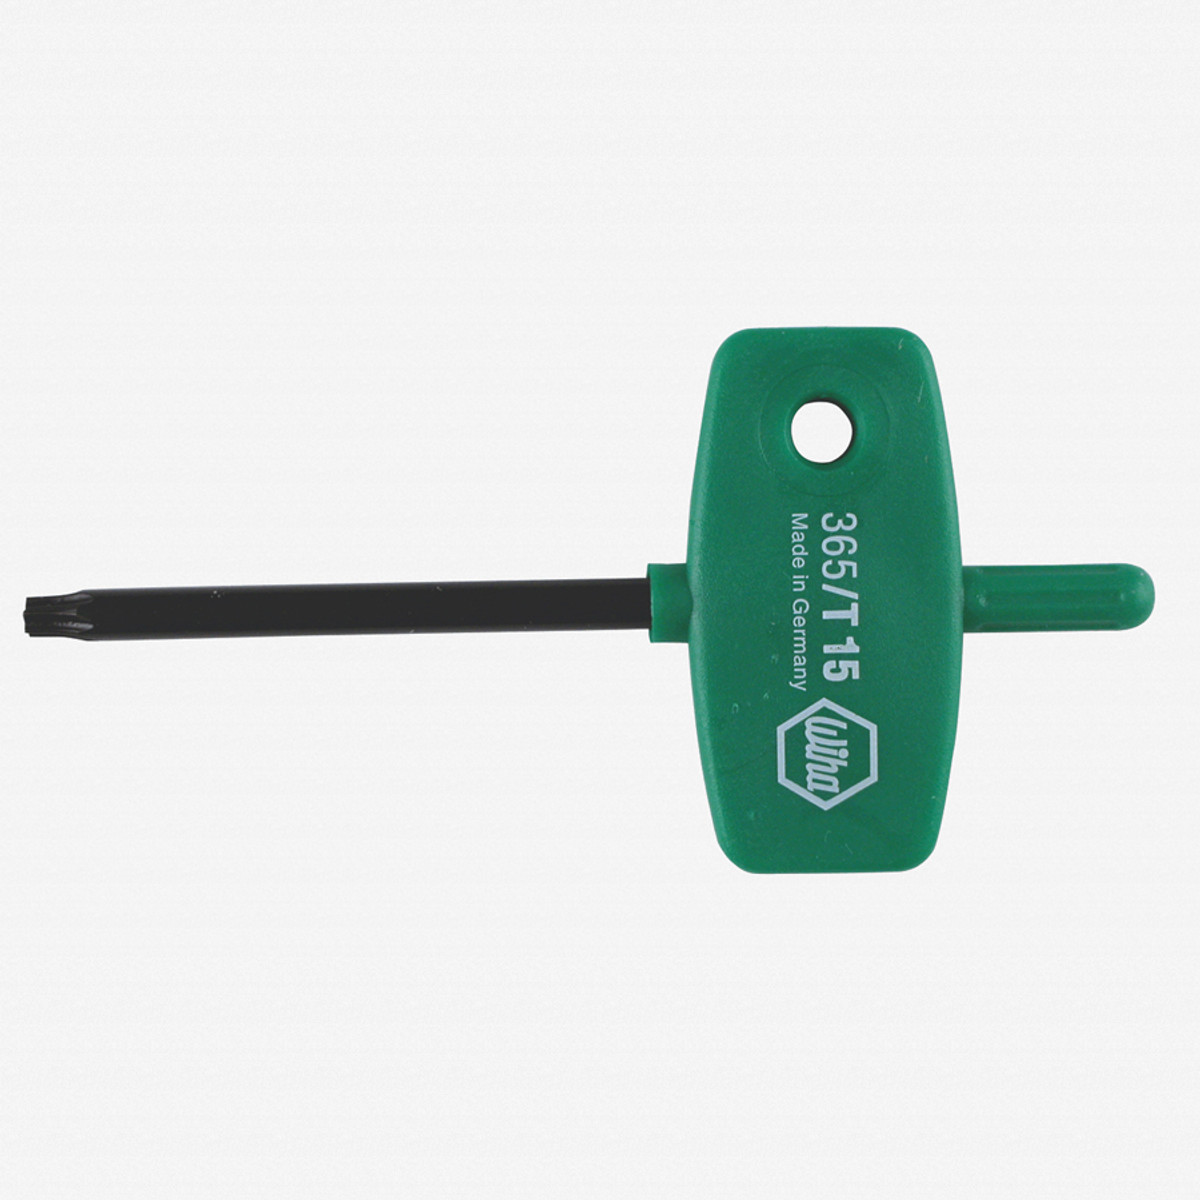 Wiha 36525 T10 x 40mm Torx Wing Handle - KC Tool